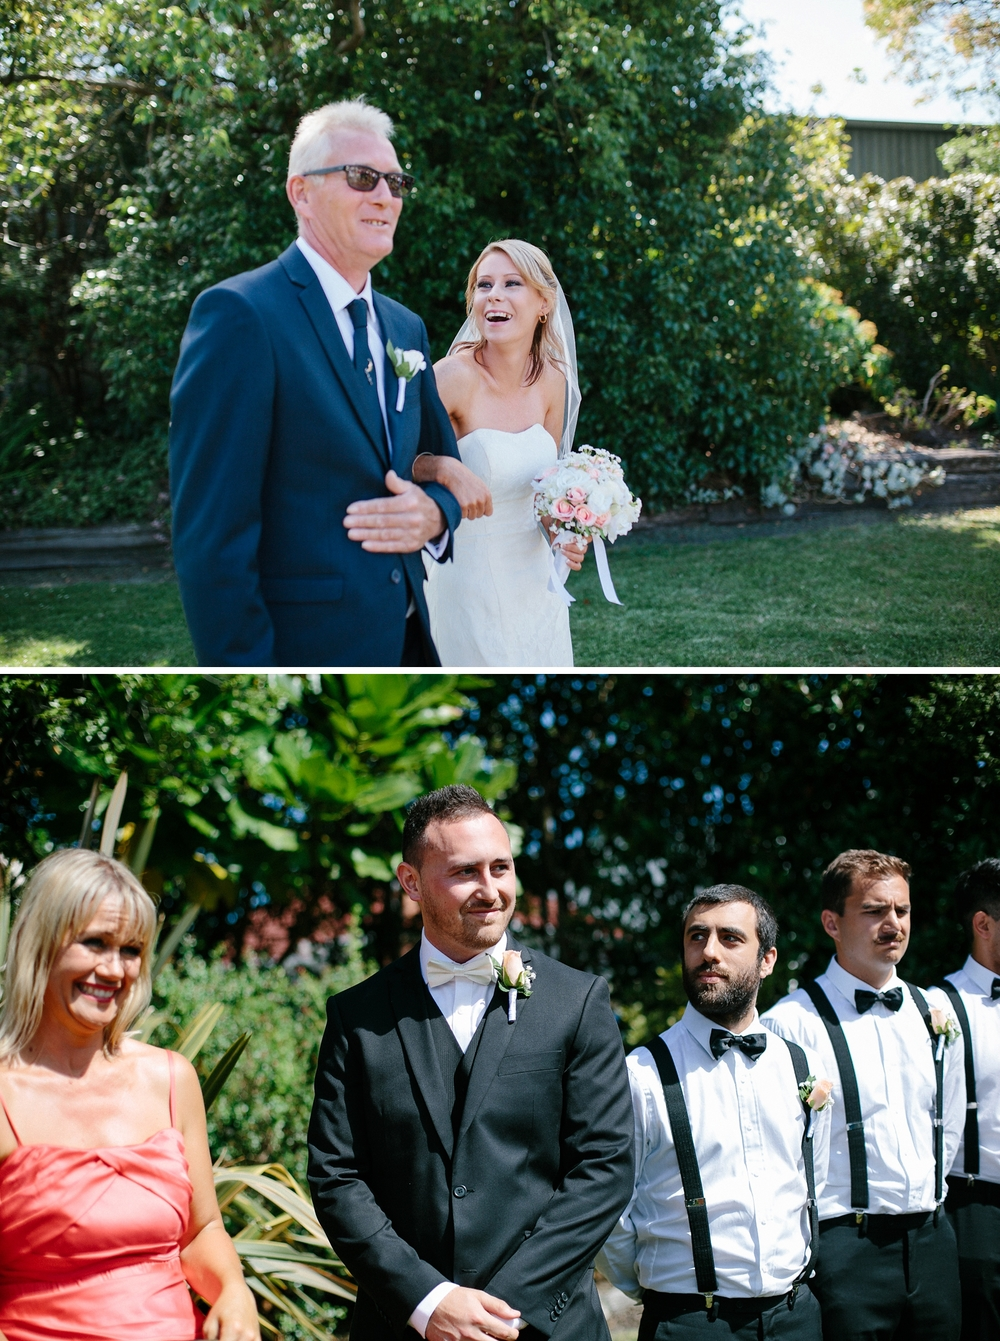 ConnorLaura_Auckland Wedding Photographer_Patty Lagera_0050.jpg